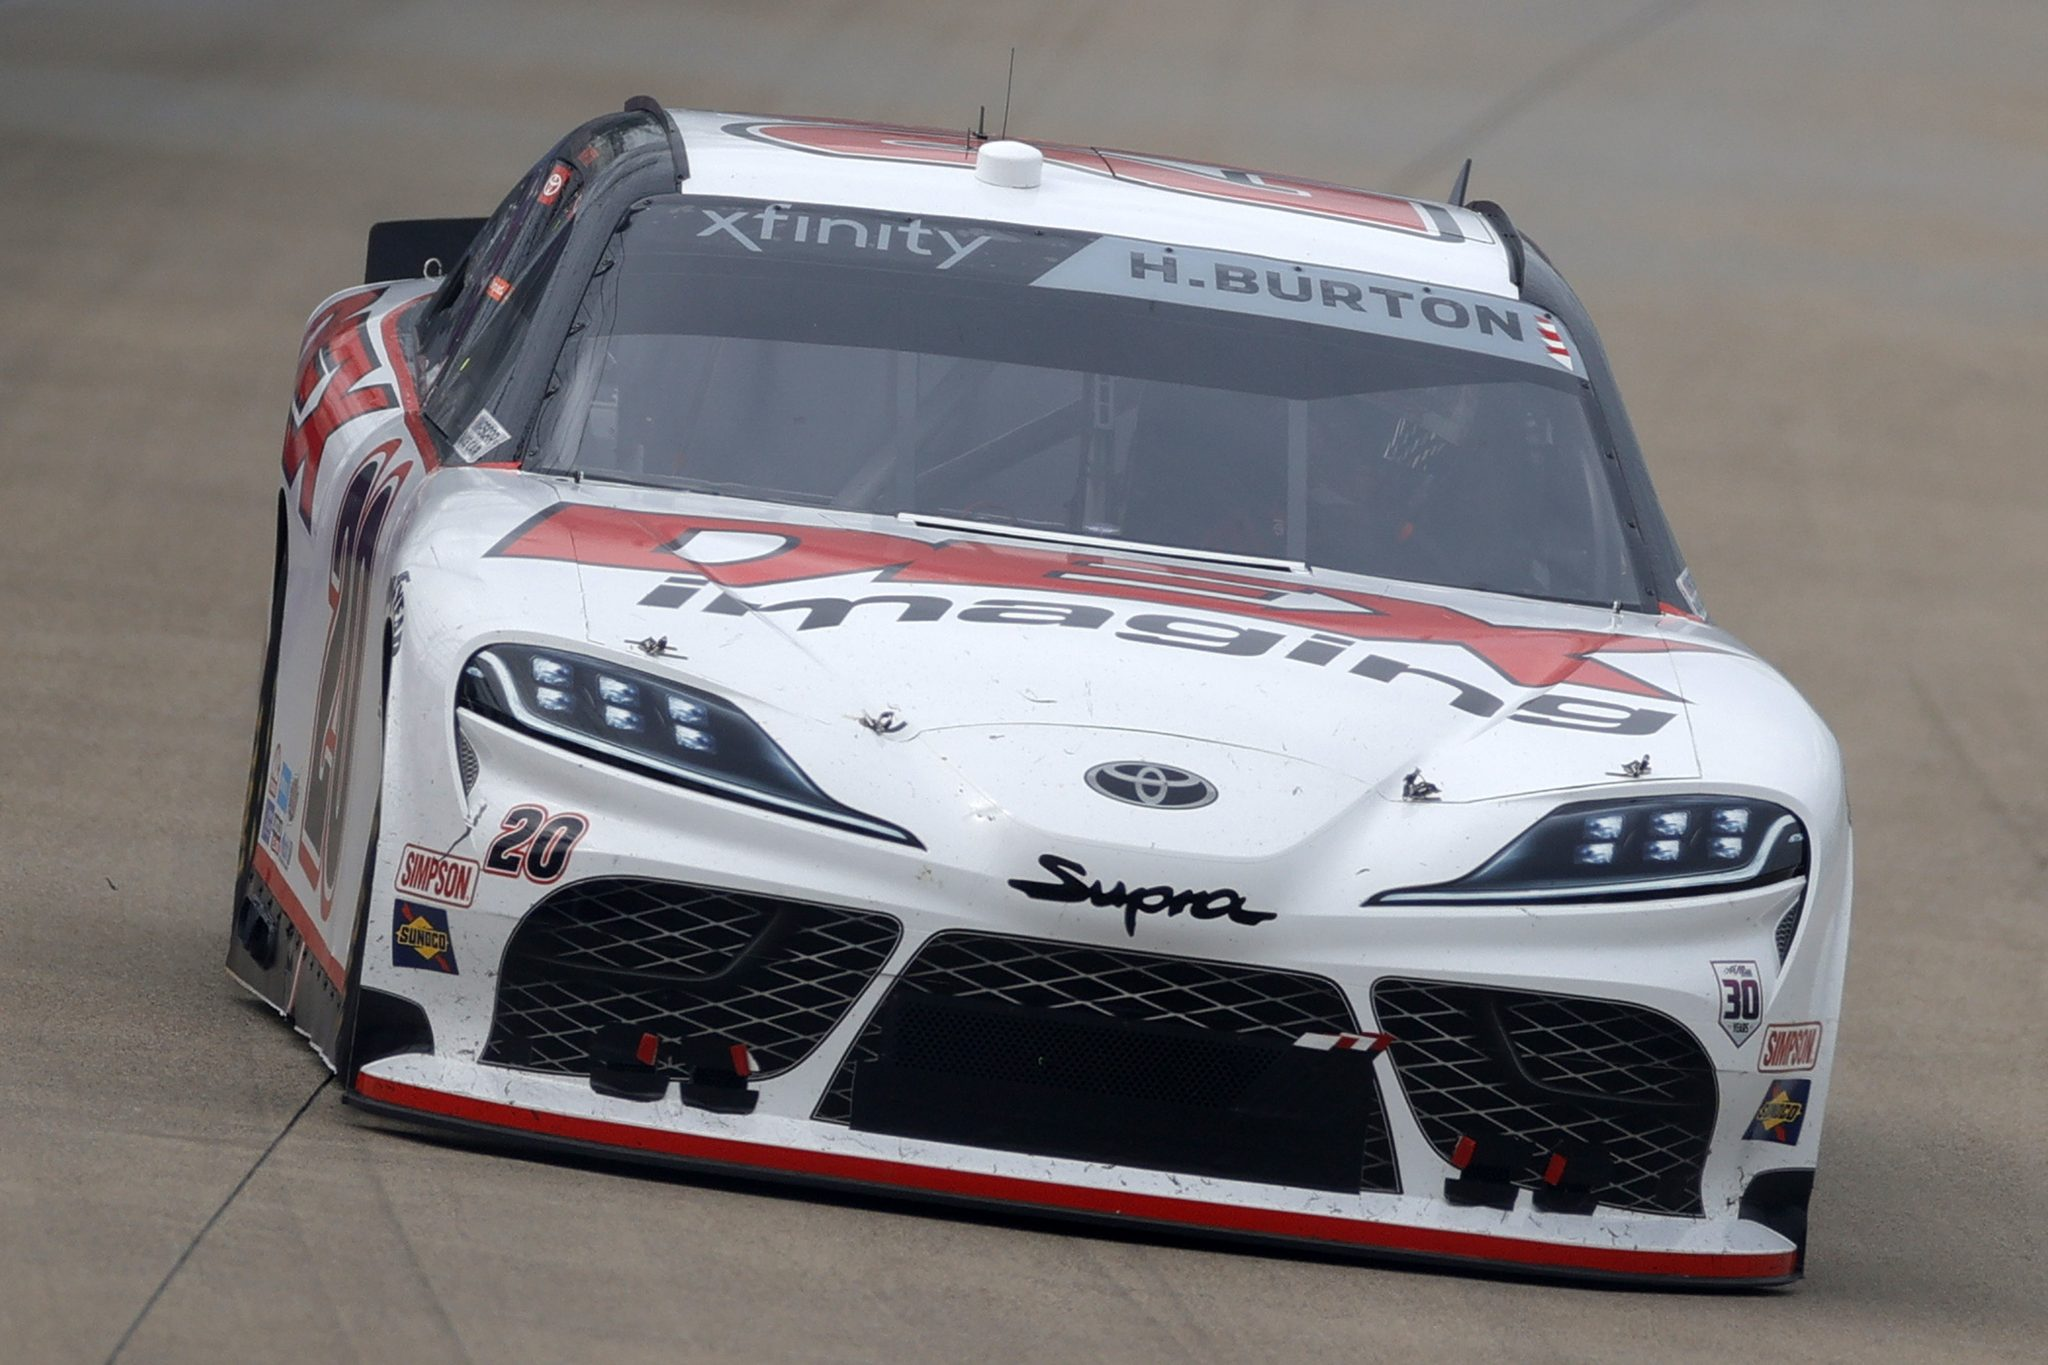 LEBANON, TENNESSEE - JUNE 19: Harrison Burton, driver of the #20 DEX Imaging Toyota, drives during the NASCAR Xfinity Series Tennessee Lottery 250 at Nashville Superspeedway on June 19, 2021 in Lebanon, Tennessee. (Photo by Sarah Stier/Getty Images) | Getty Images